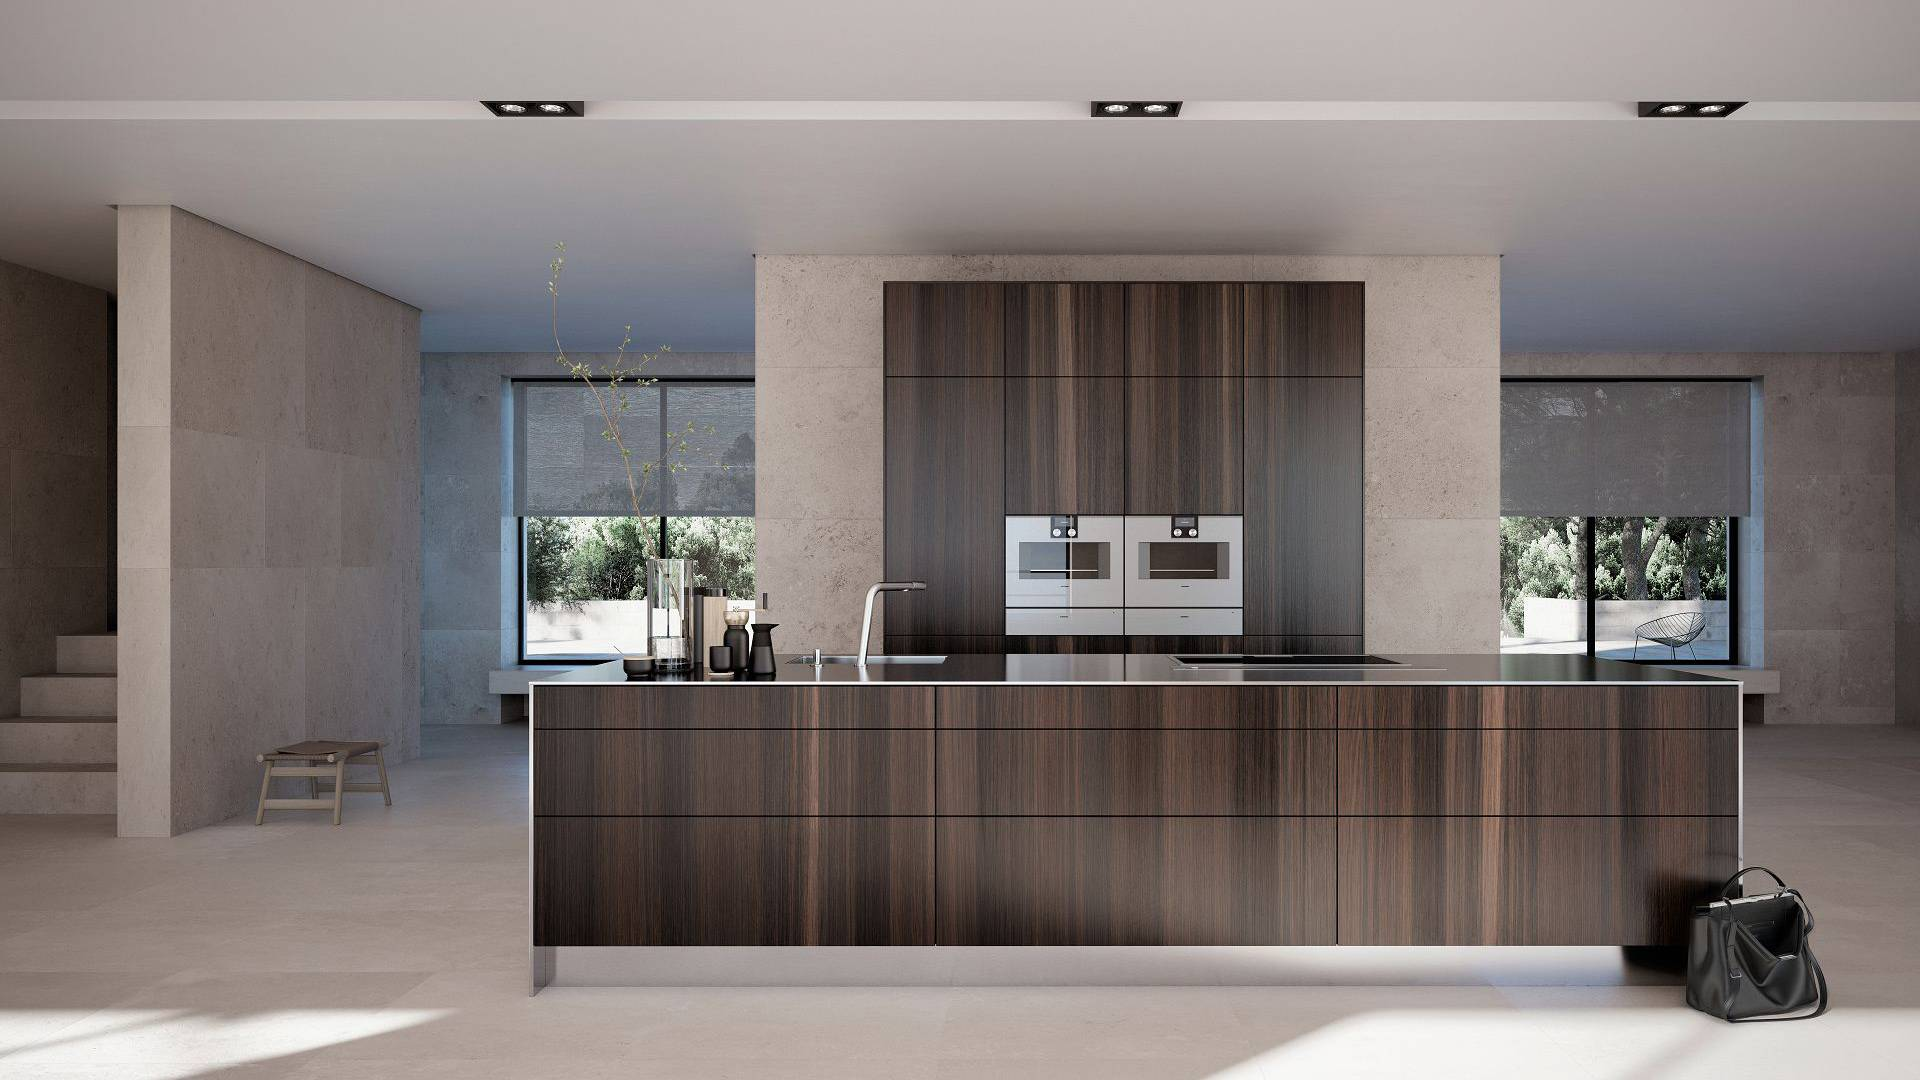 siematic kitchen interior design of timeless elegance. Black Bedroom Furniture Sets. Home Design Ideas